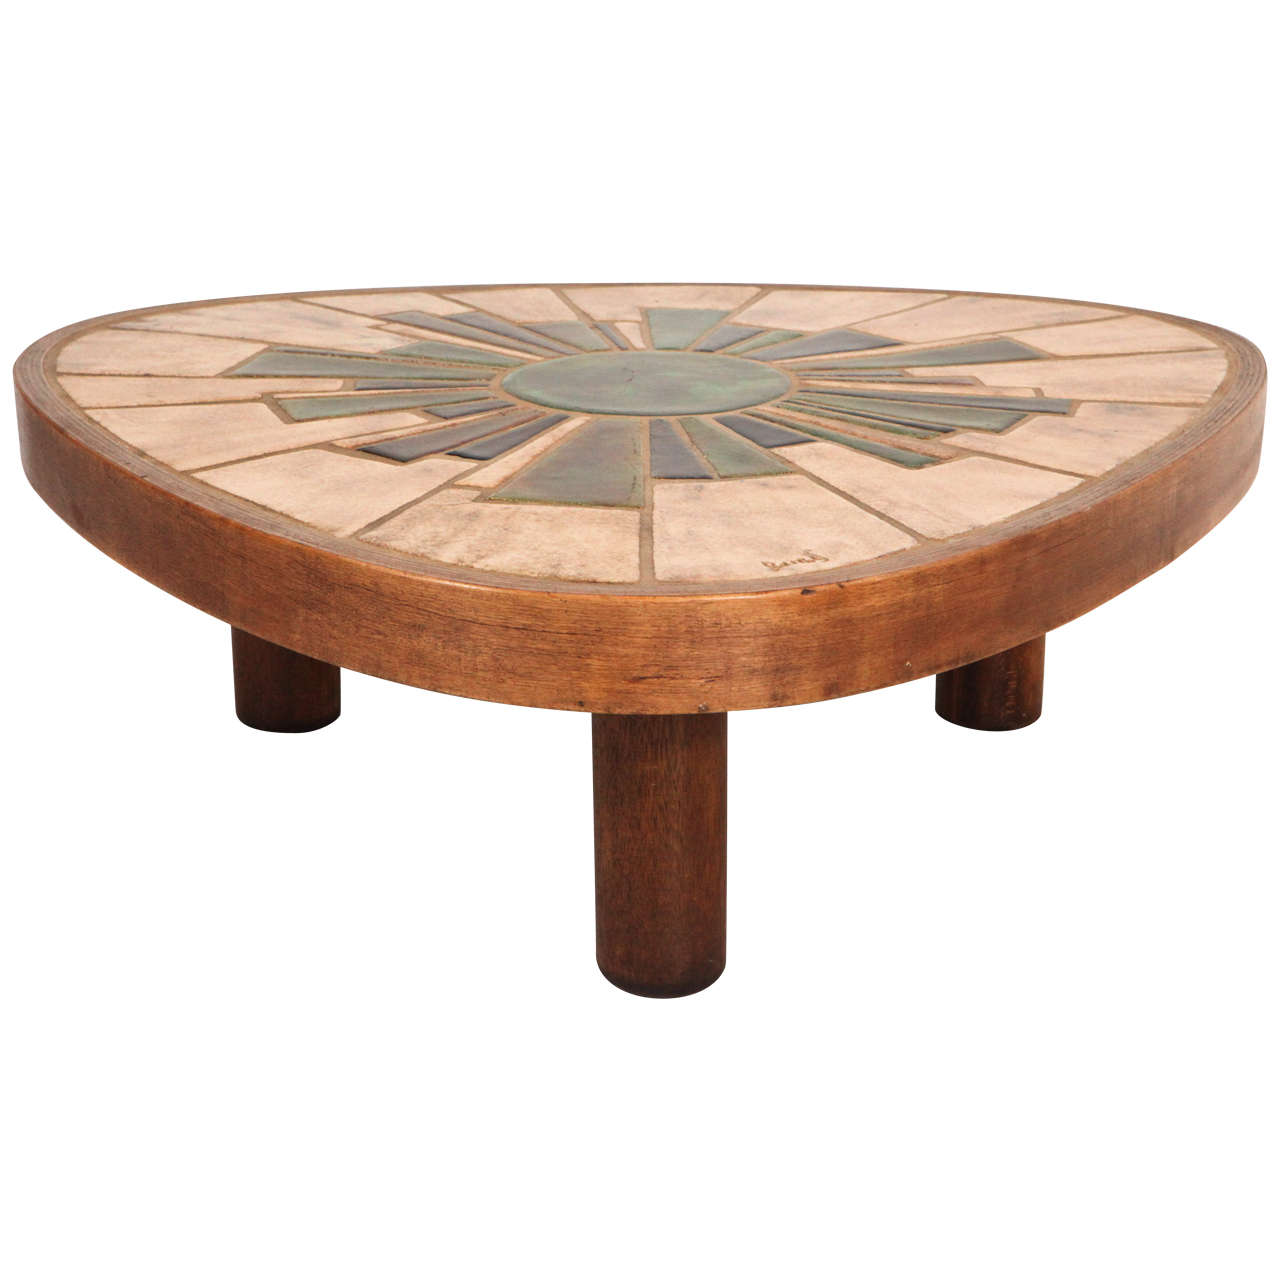 1970s Tile Coffee Table Signed Barrois At 1stdibs